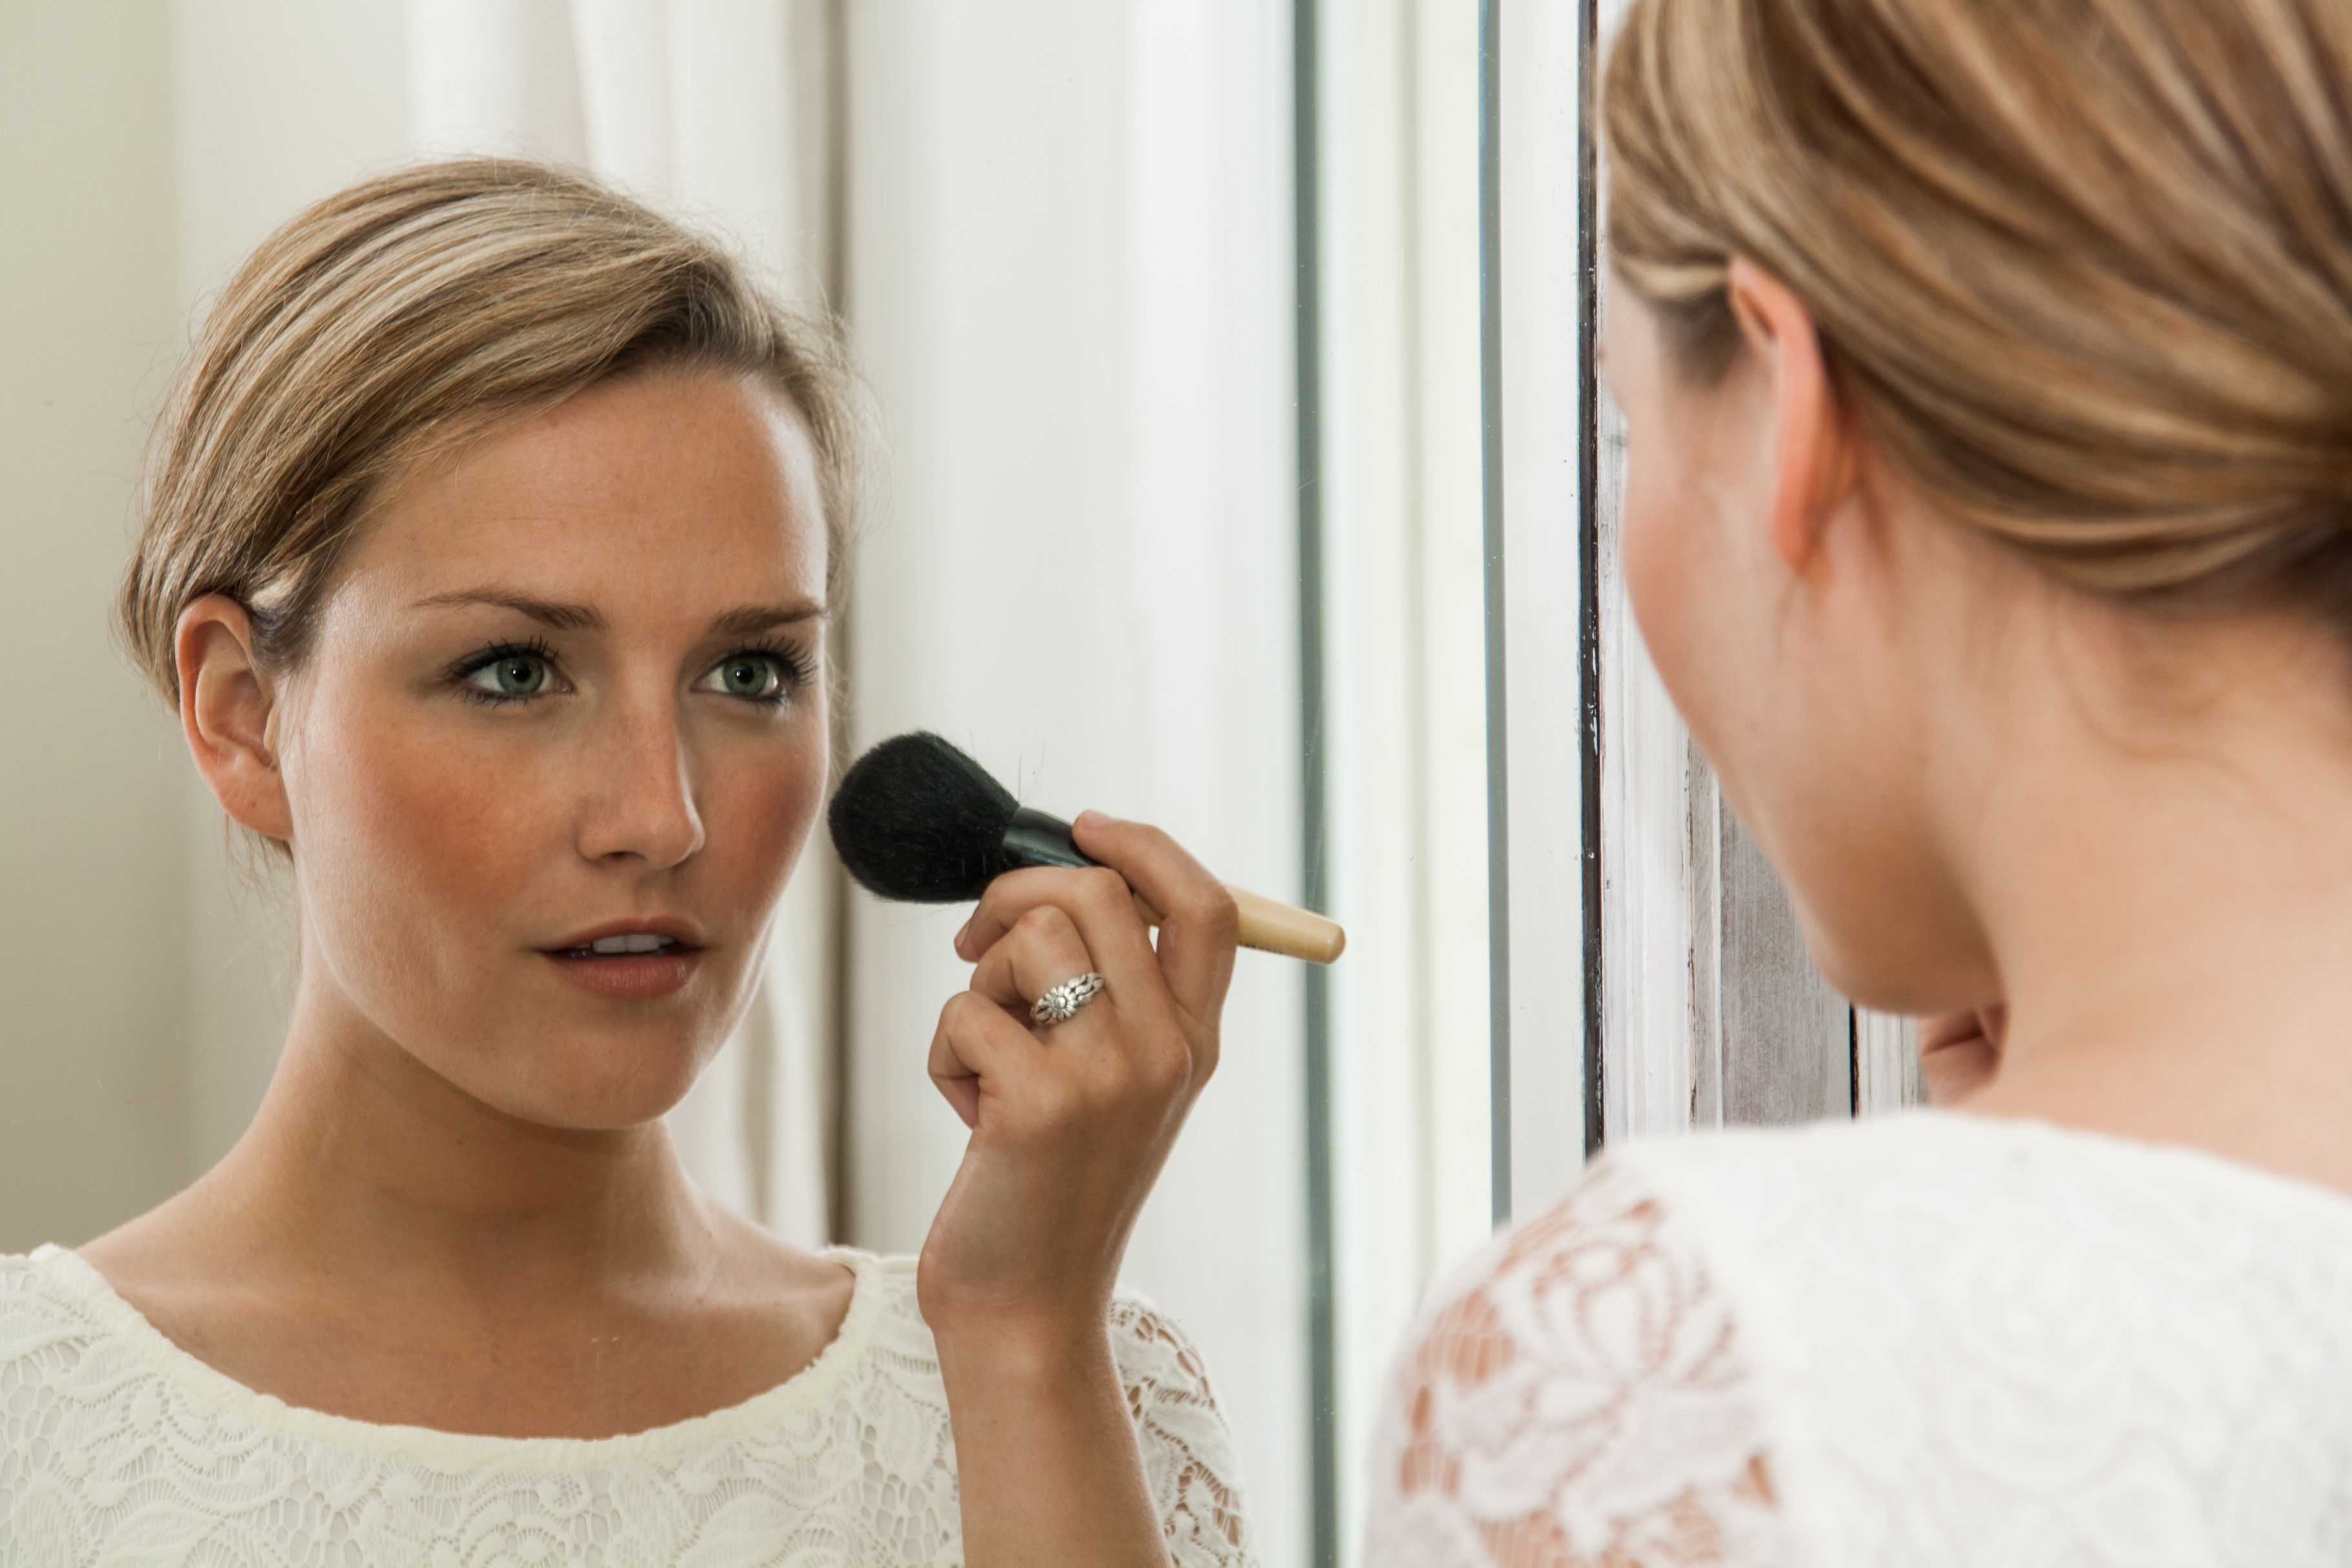 Slideshow: 11 Makeup and Beauty Tips For Women Over 11 – Page 11